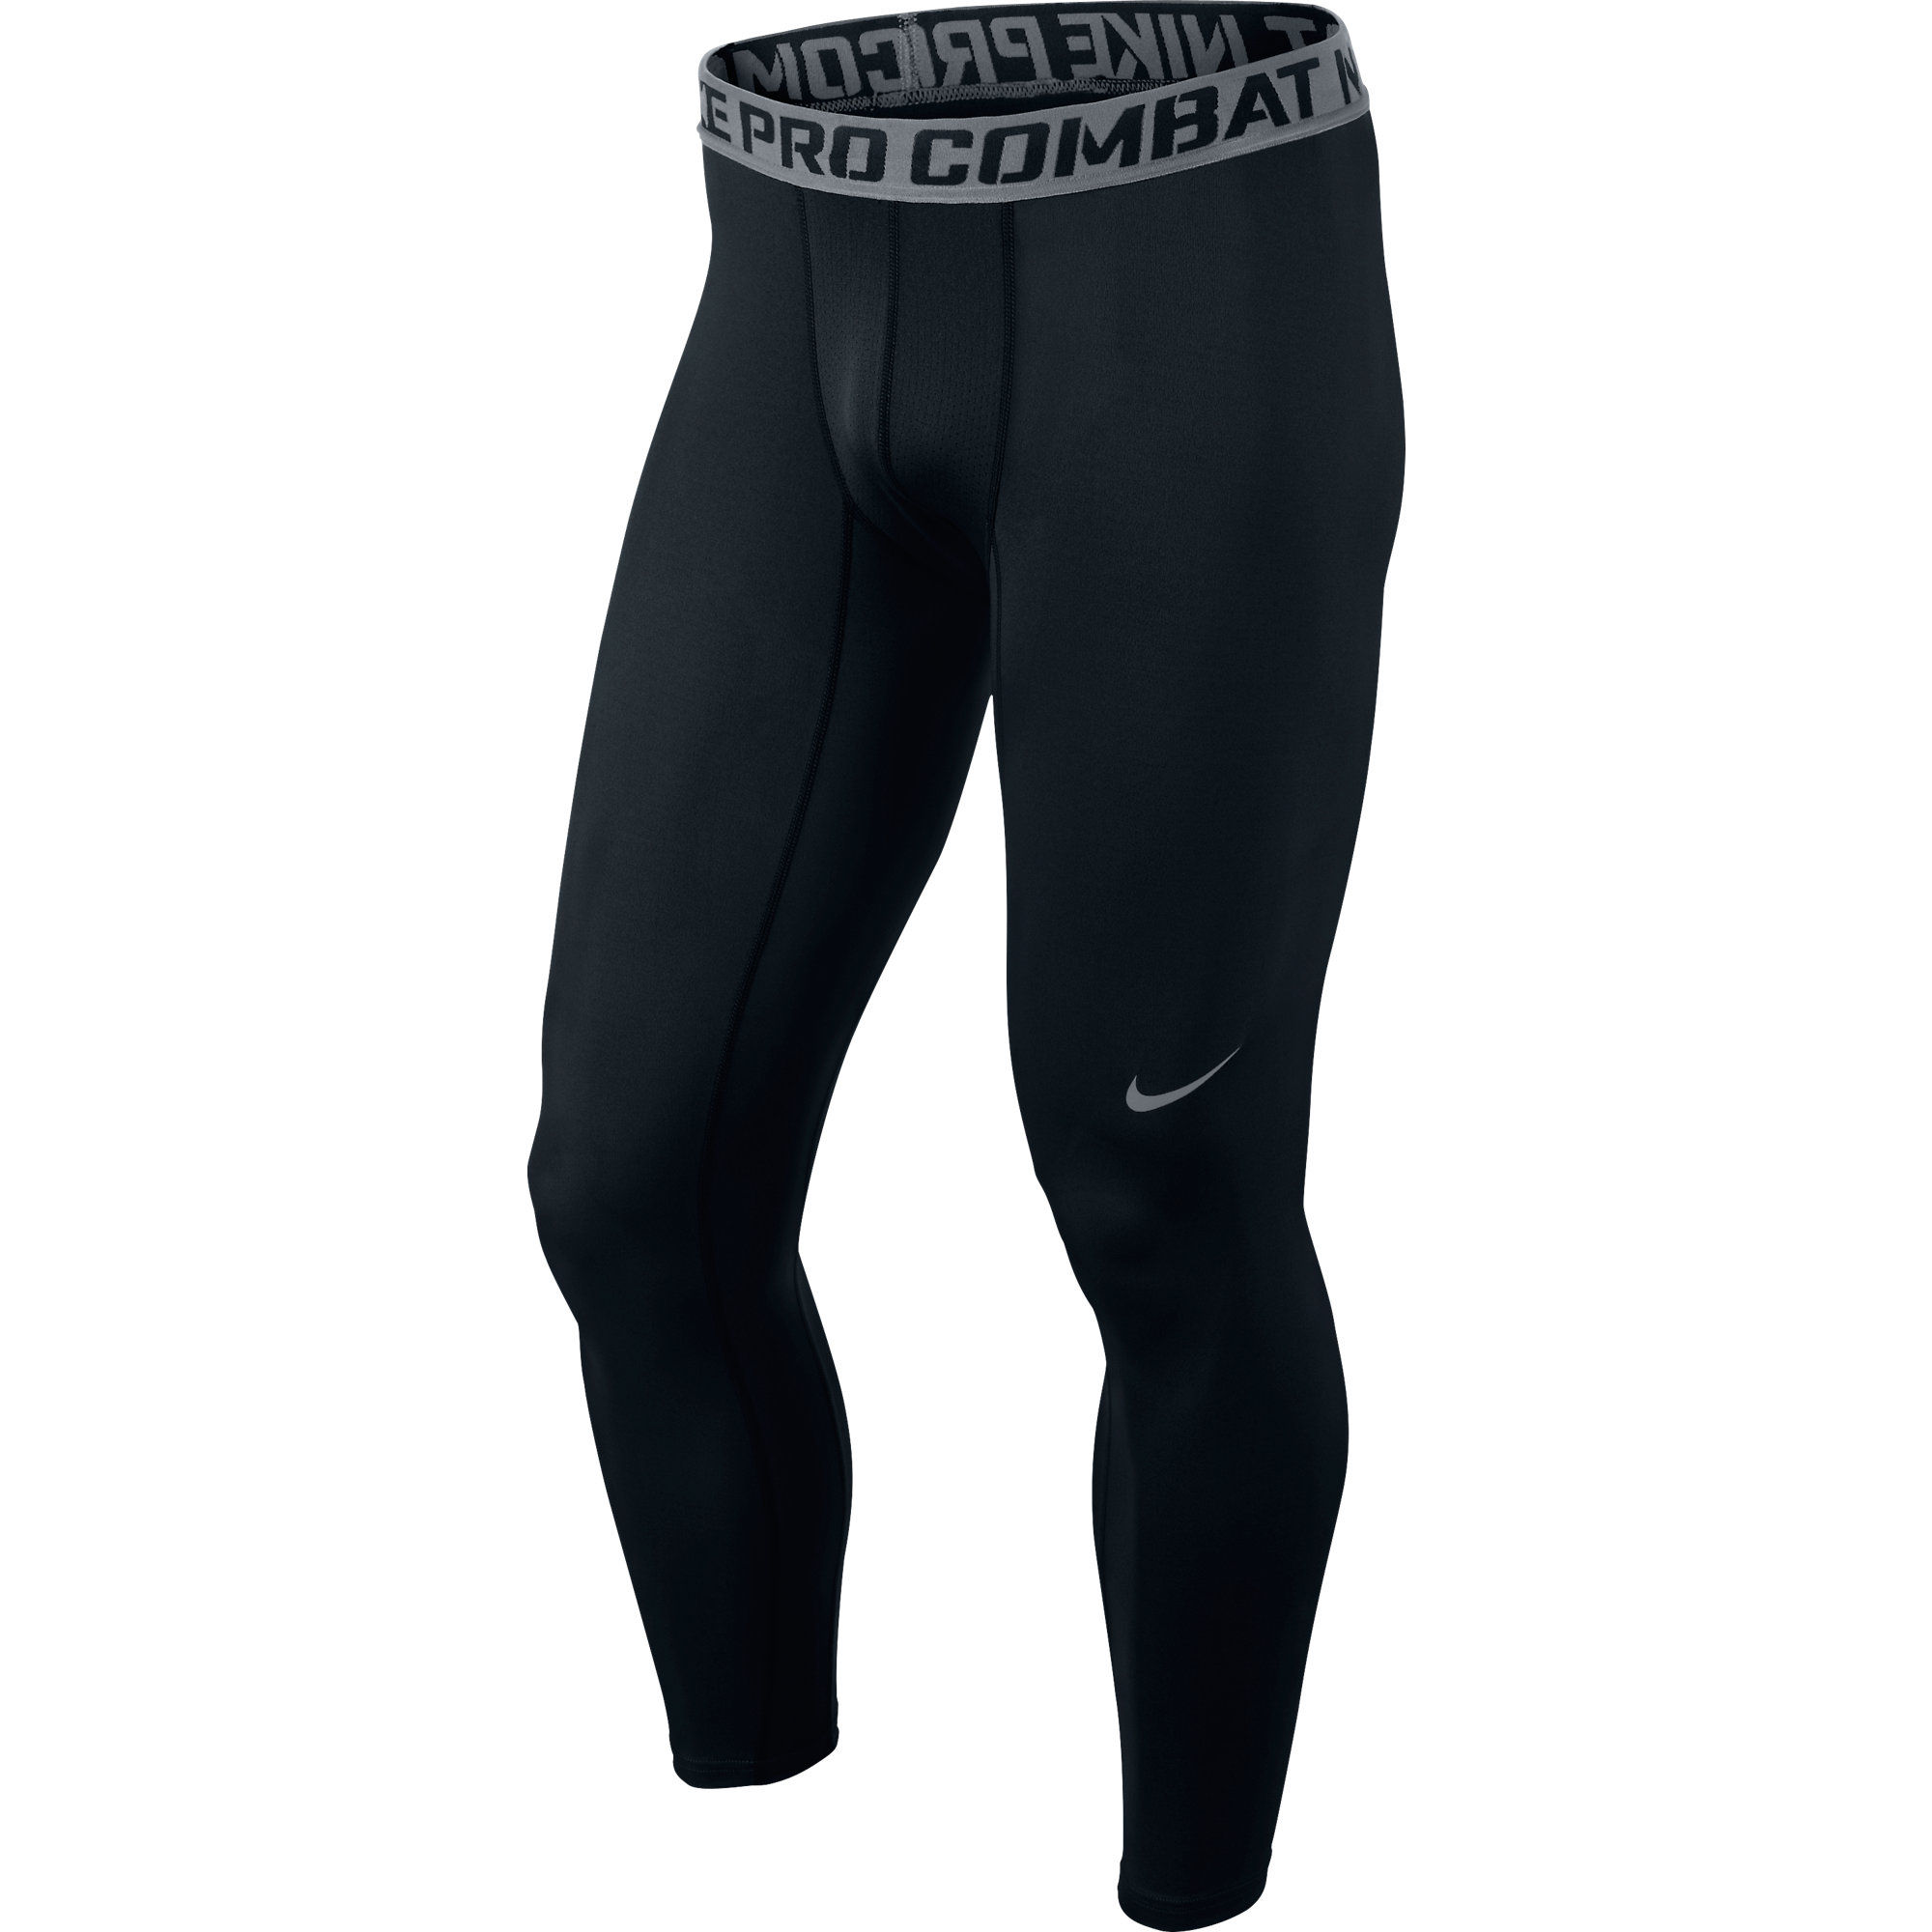 Compression gear is supposed to be worn in recovery, but athletes from pro to your neighbor are rocking snug tights and sleeves all the time, is it worth it?